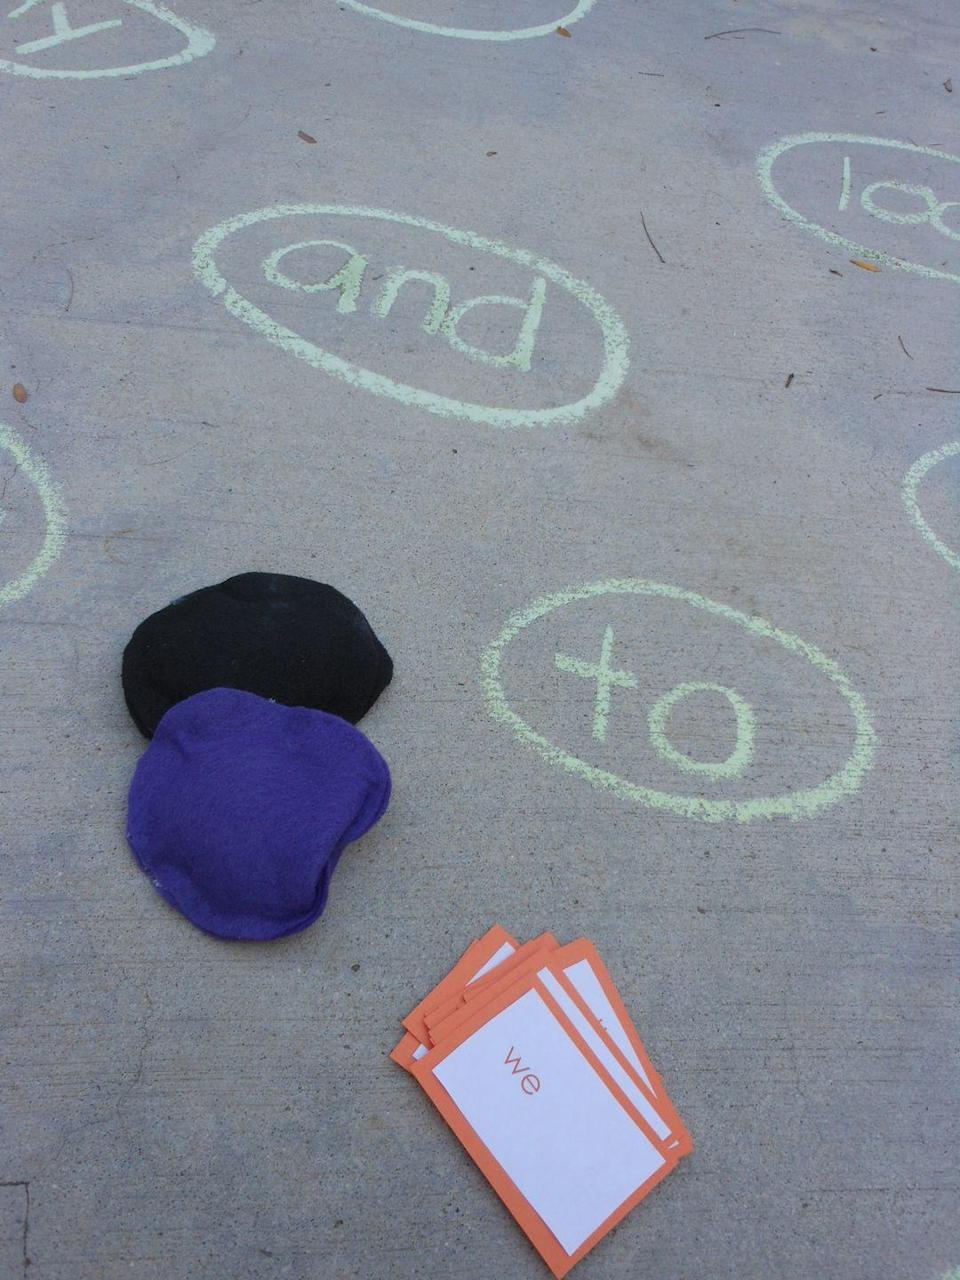 """<p>Use chalk play as a way for kids to practice their sight words: Simply write the words on the sidewalk, tossing a bean bag and practicing each word it lands on a few times.</p><p><em><a href=""""https://confidencemeetsparenting.com/sight-word-bean-bag-toss/"""" rel=""""nofollow noopener"""" target=""""_blank"""" data-ylk=""""slk:Get the tutorial from Confidence Meets Parenting »"""" class=""""link rapid-noclick-resp"""">Get the tutorial from Confidence Meets Parenting »</a></em></p>"""